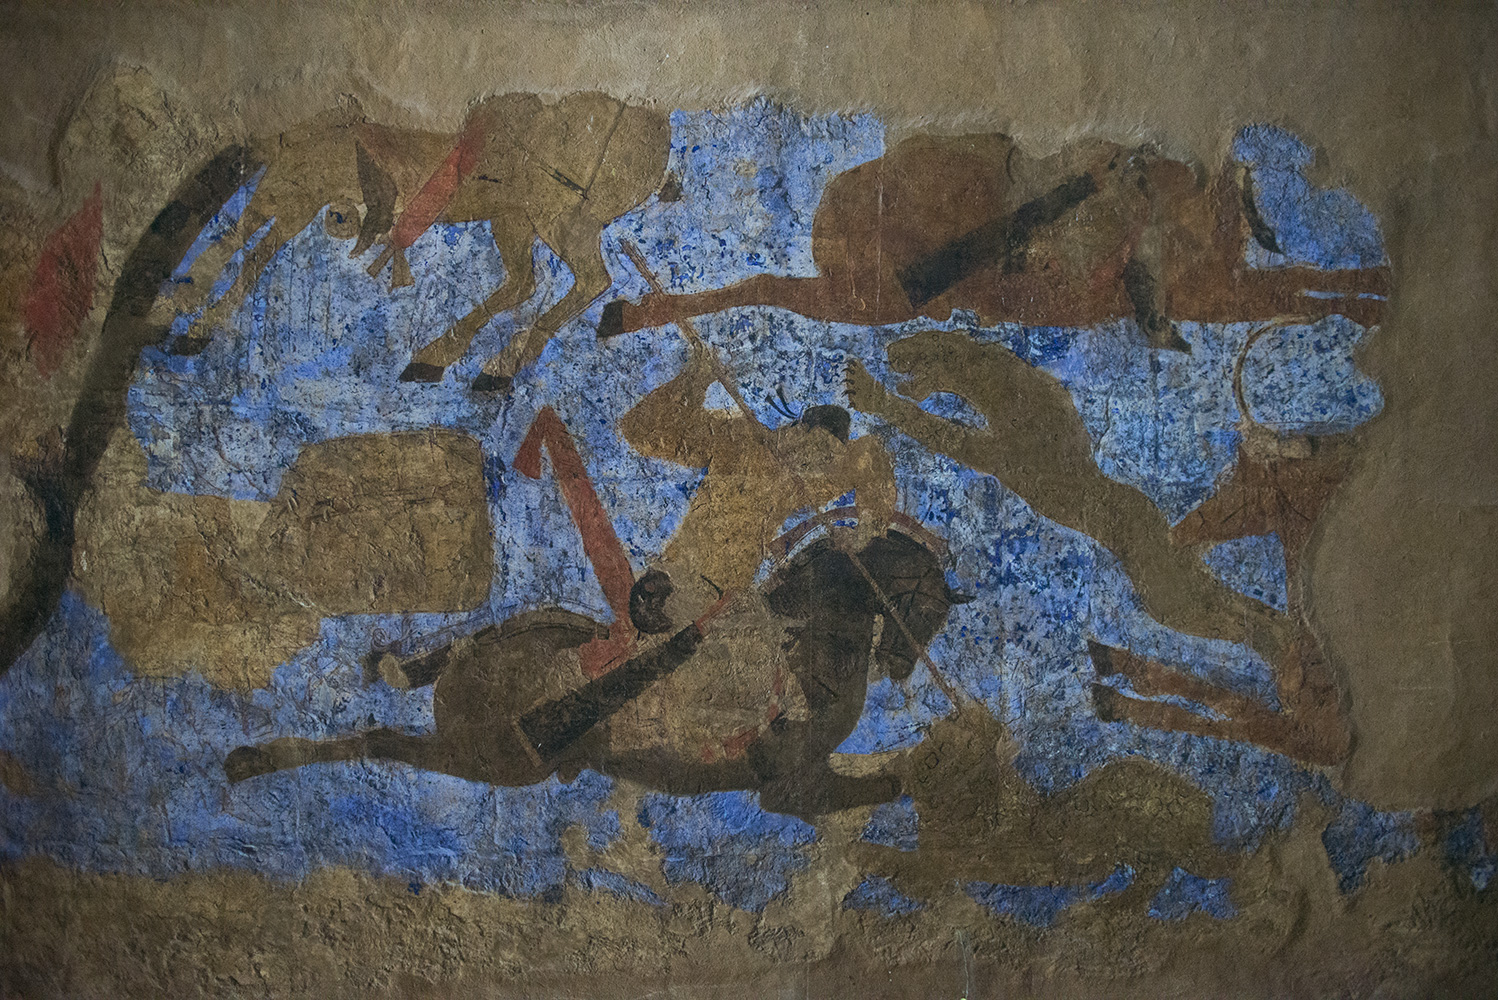 Though this museum is a little tired and lacking luster, there are a few really amazing exhibits. This is one. It is a uniquely preserved frescoe from a palace in Samarkand dating to the Ikhshid Dynasty of the 7th-8th centuries.